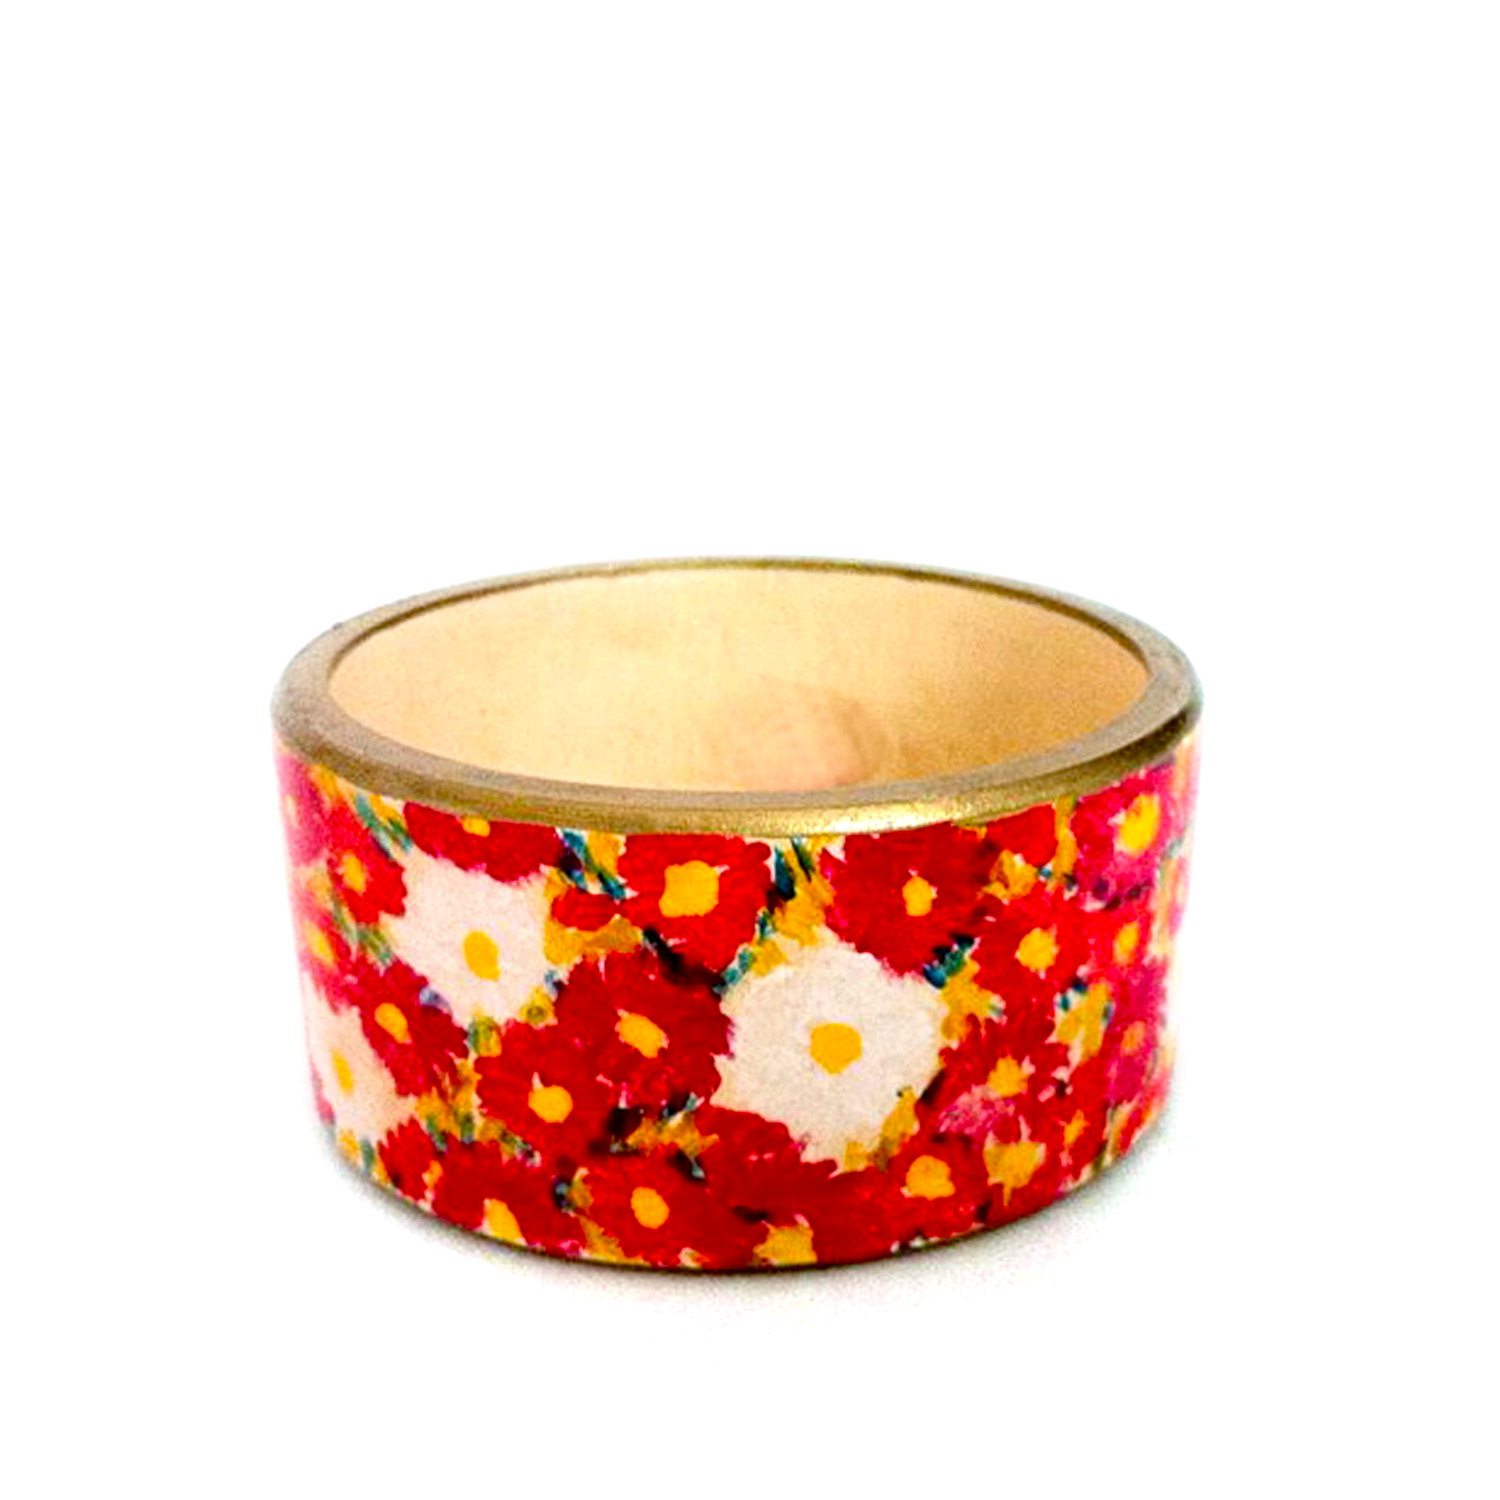 Hand-painted bangle - Field of flowers by Schiele